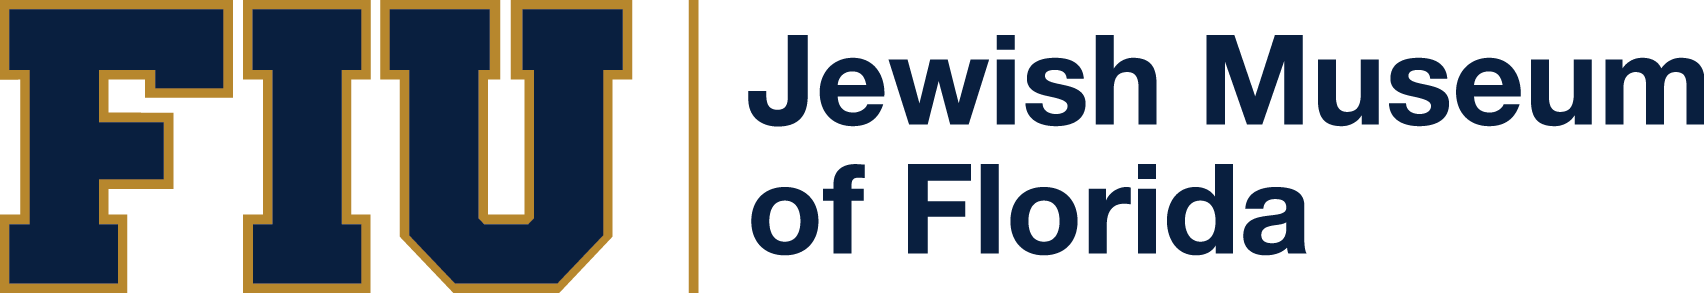 Jemish Museum of Florida Logo